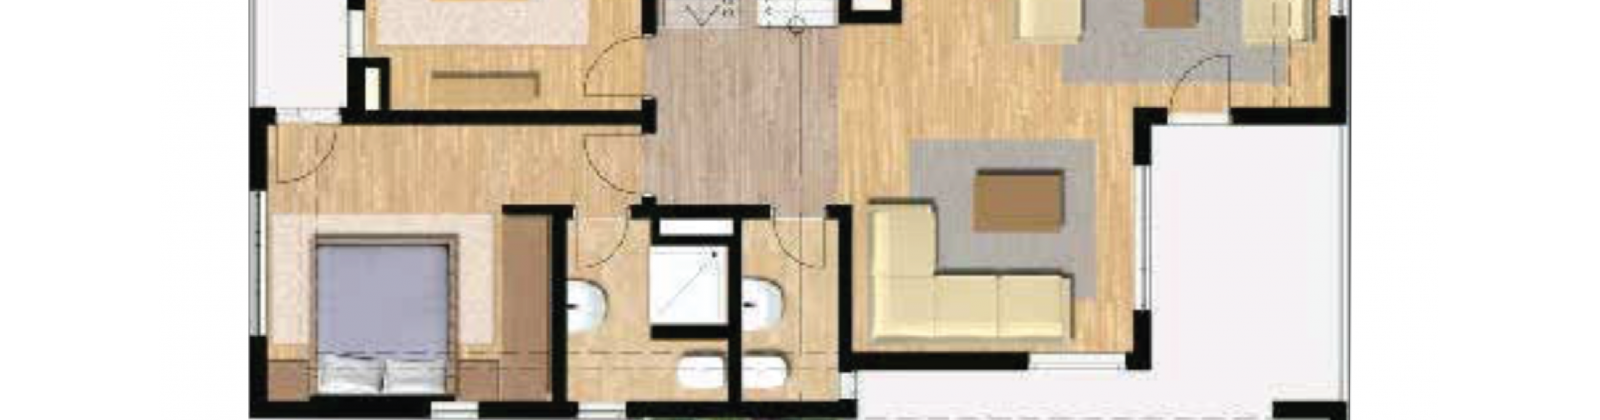 Semi-Detached-1st Floor